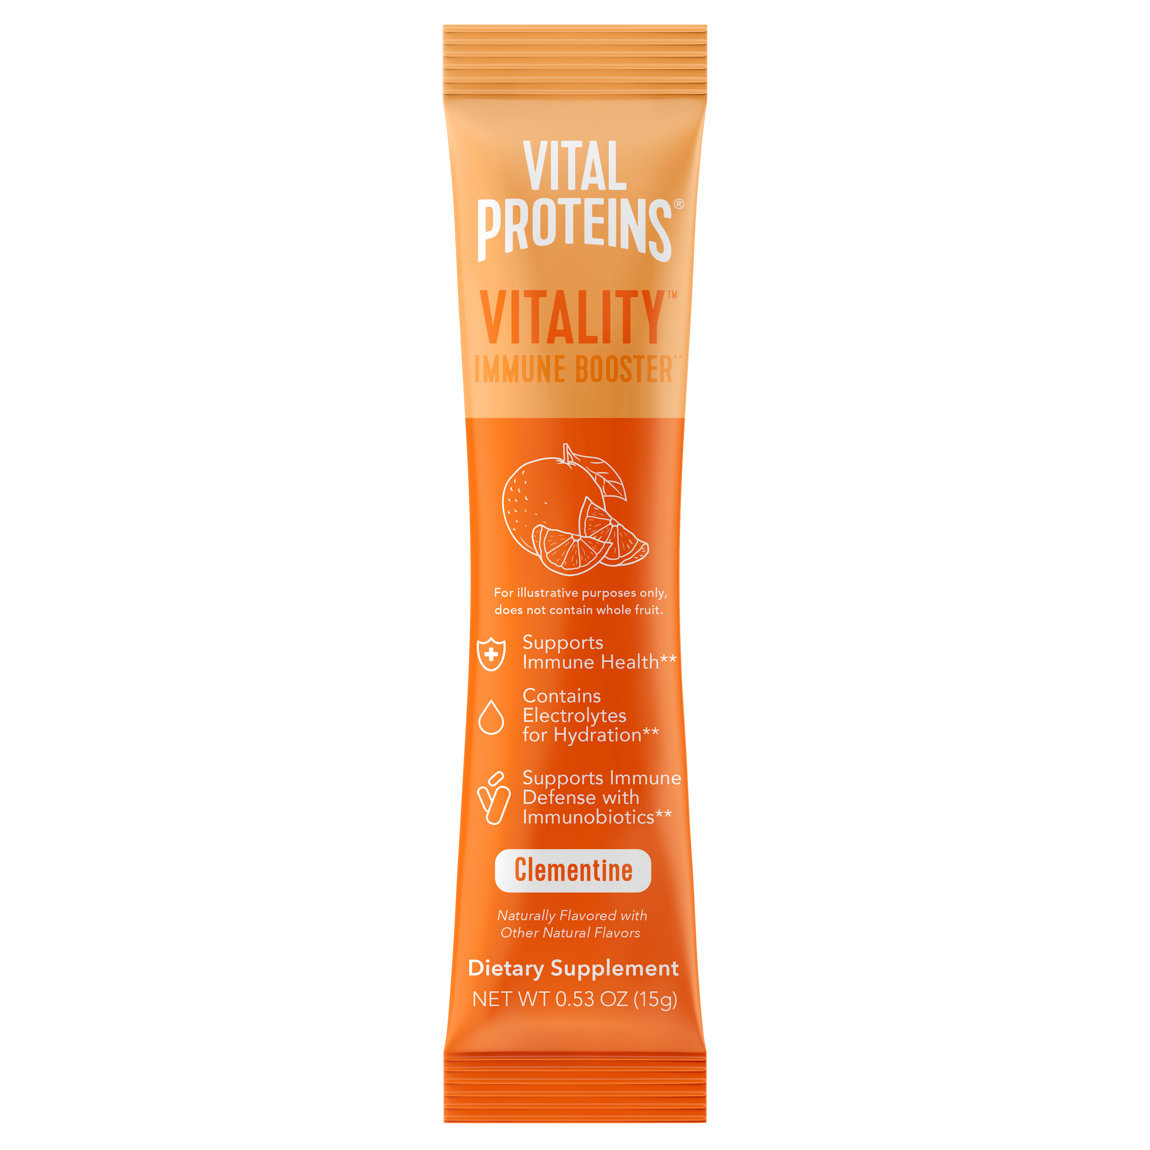 Vital Proteins Vitality Immune Booster Stick Pack Box Clementine alternative view 1 - product swatch.